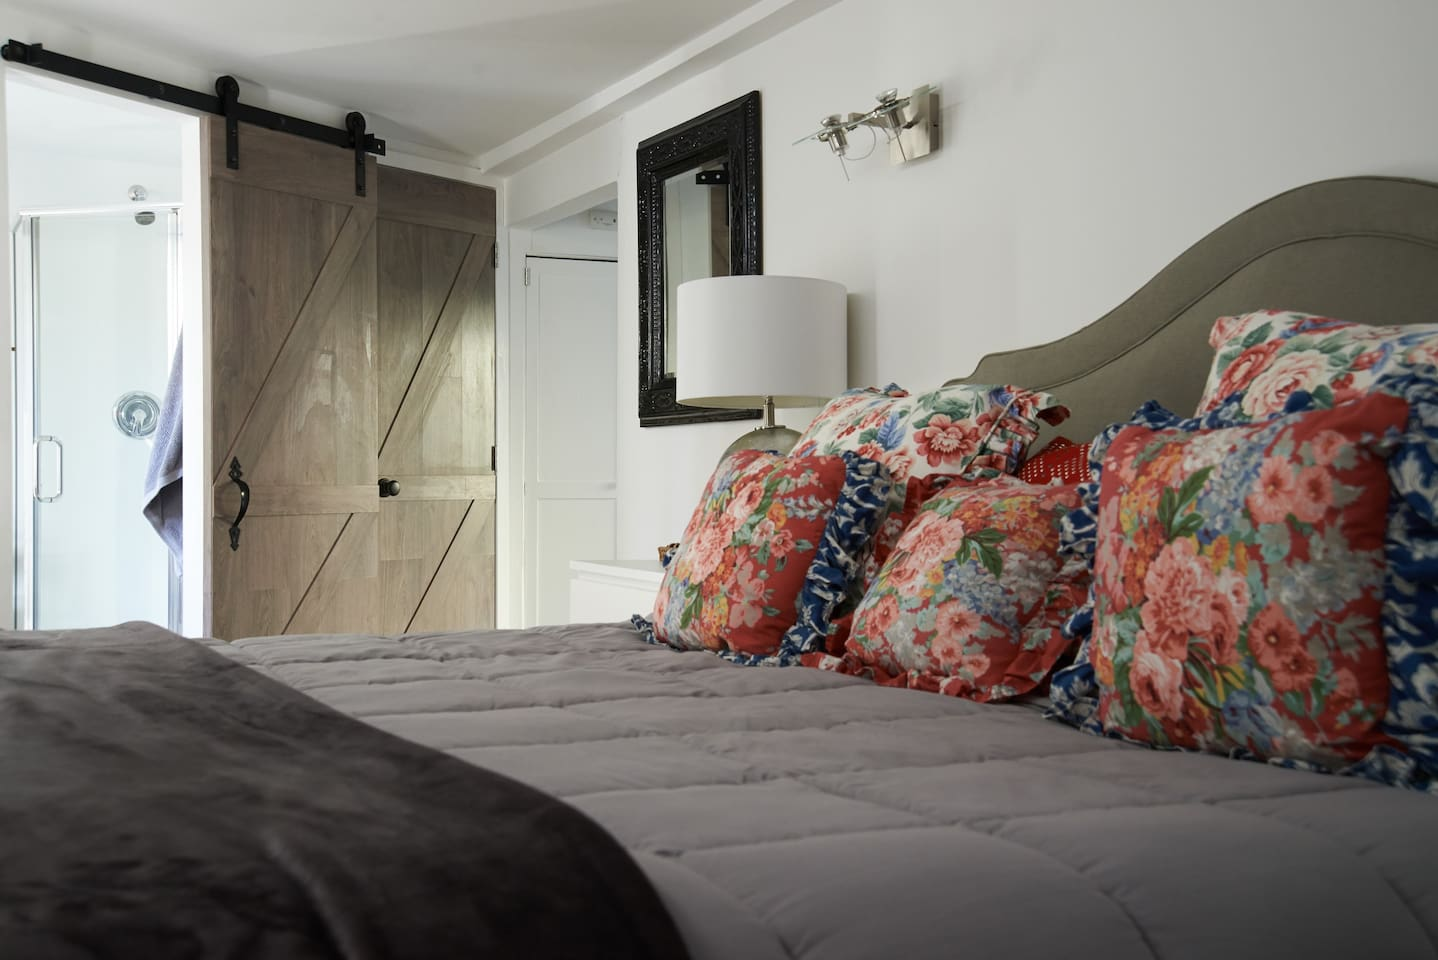 King size bed close to  bathroom with barn doors.